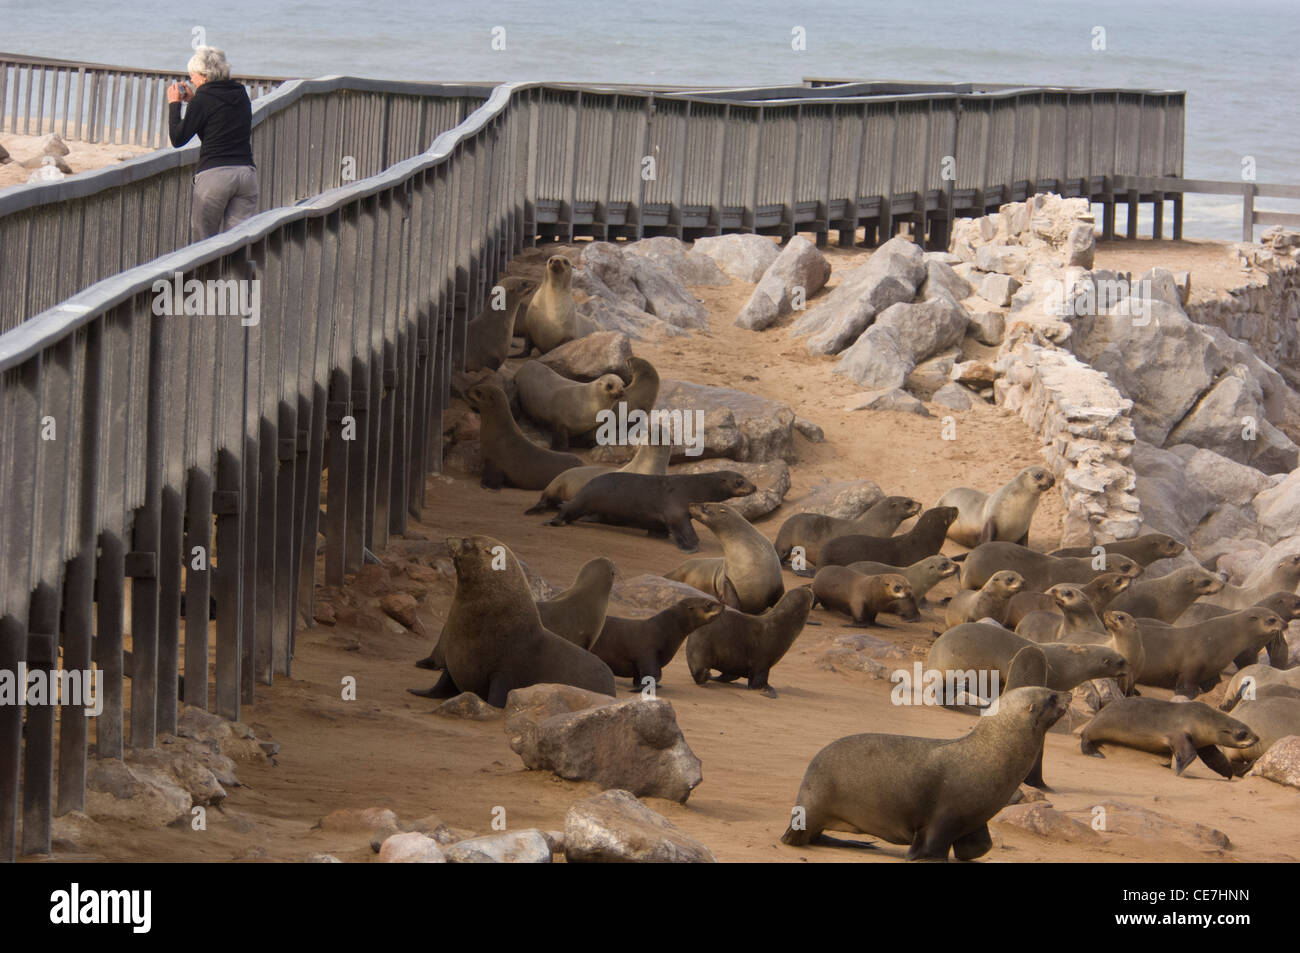 Walkway from where visitors can watch the Cape Fur Seals colony, Cape Cross, Namibia. - Stock Image